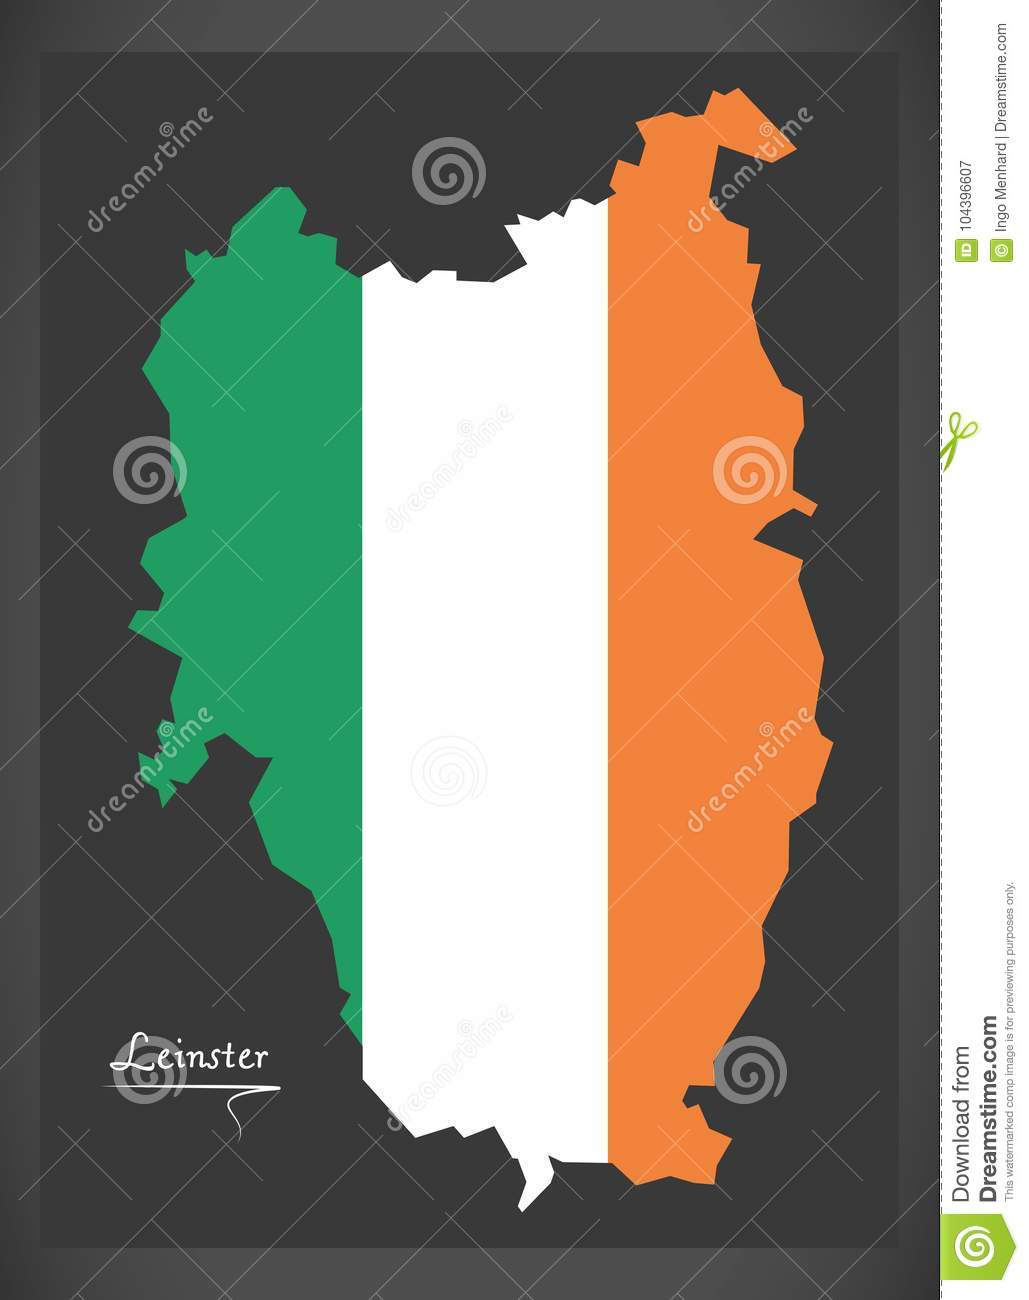 Map Of Ireland Leinster.Leinster Map Of Ireland With Irish National Flag Illustration Stock